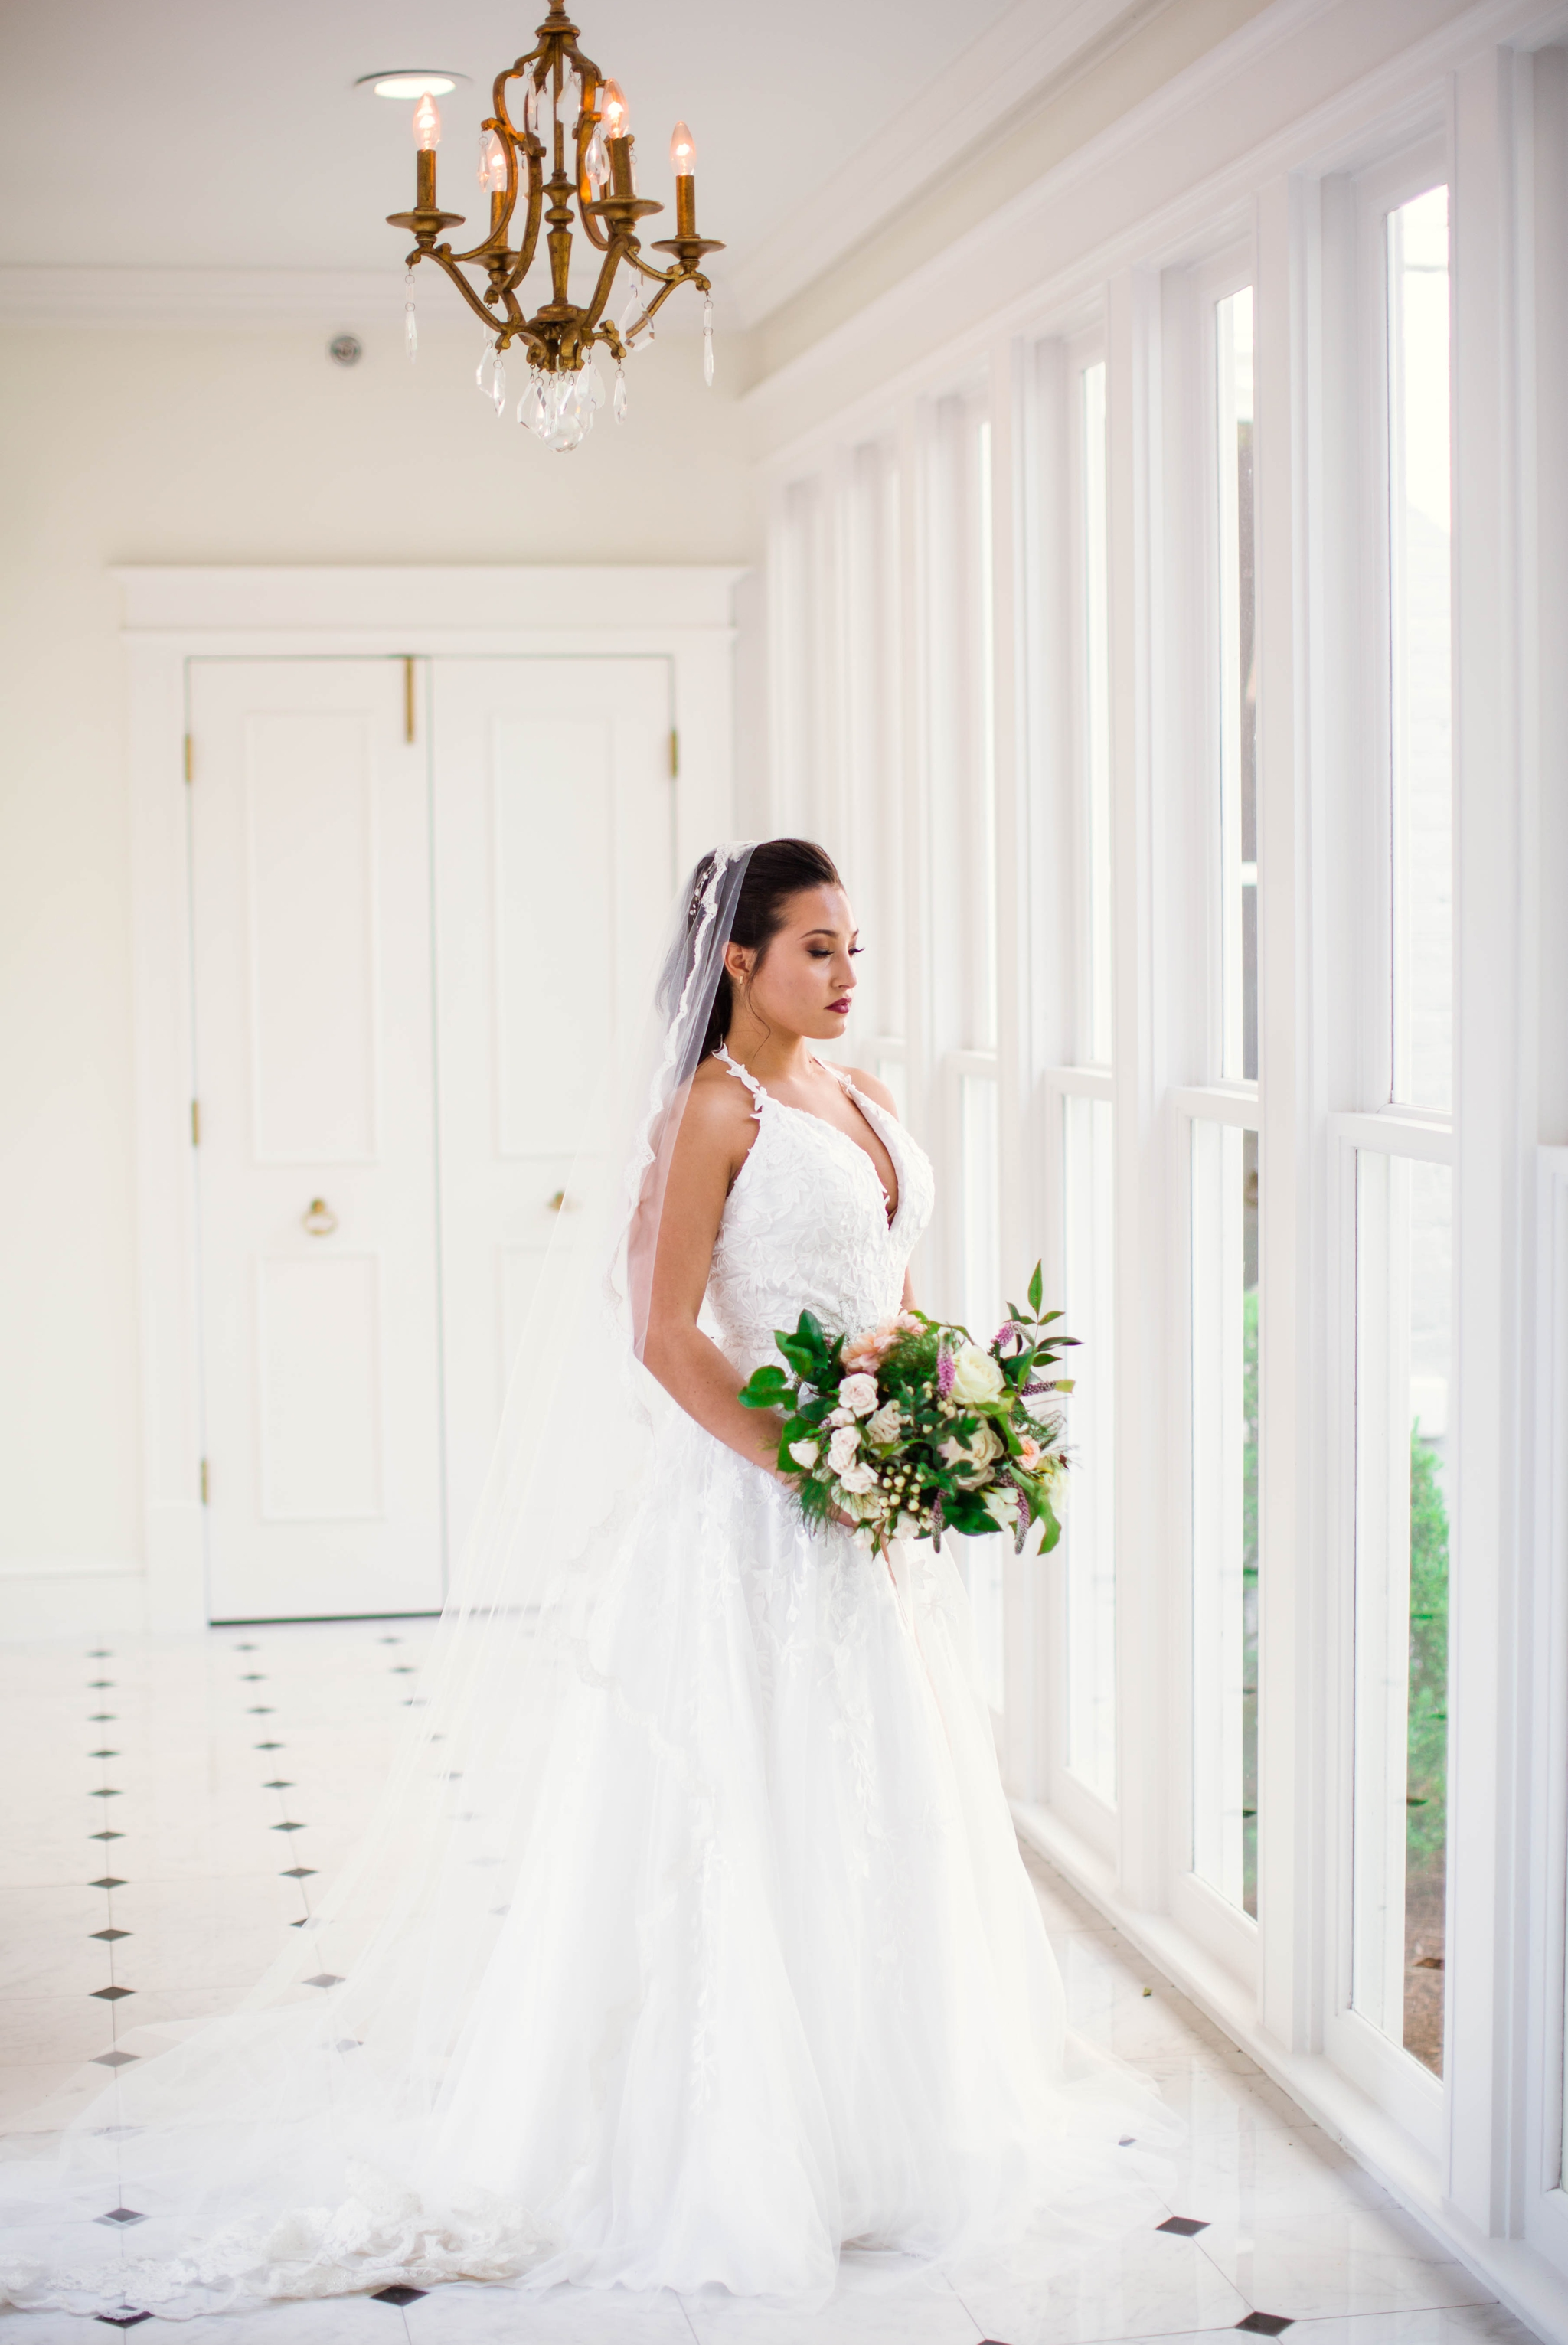 Natural light Bridal Portraits in an all white luxury estate venue with black and white floors and a golden chandelier - Bride is wearing a Wedding Dress by Sherri Hill - shot with available window light - Fine Art Wedding Photographer in Honolulu Oahu Hawaii - Johanna Dye Photography